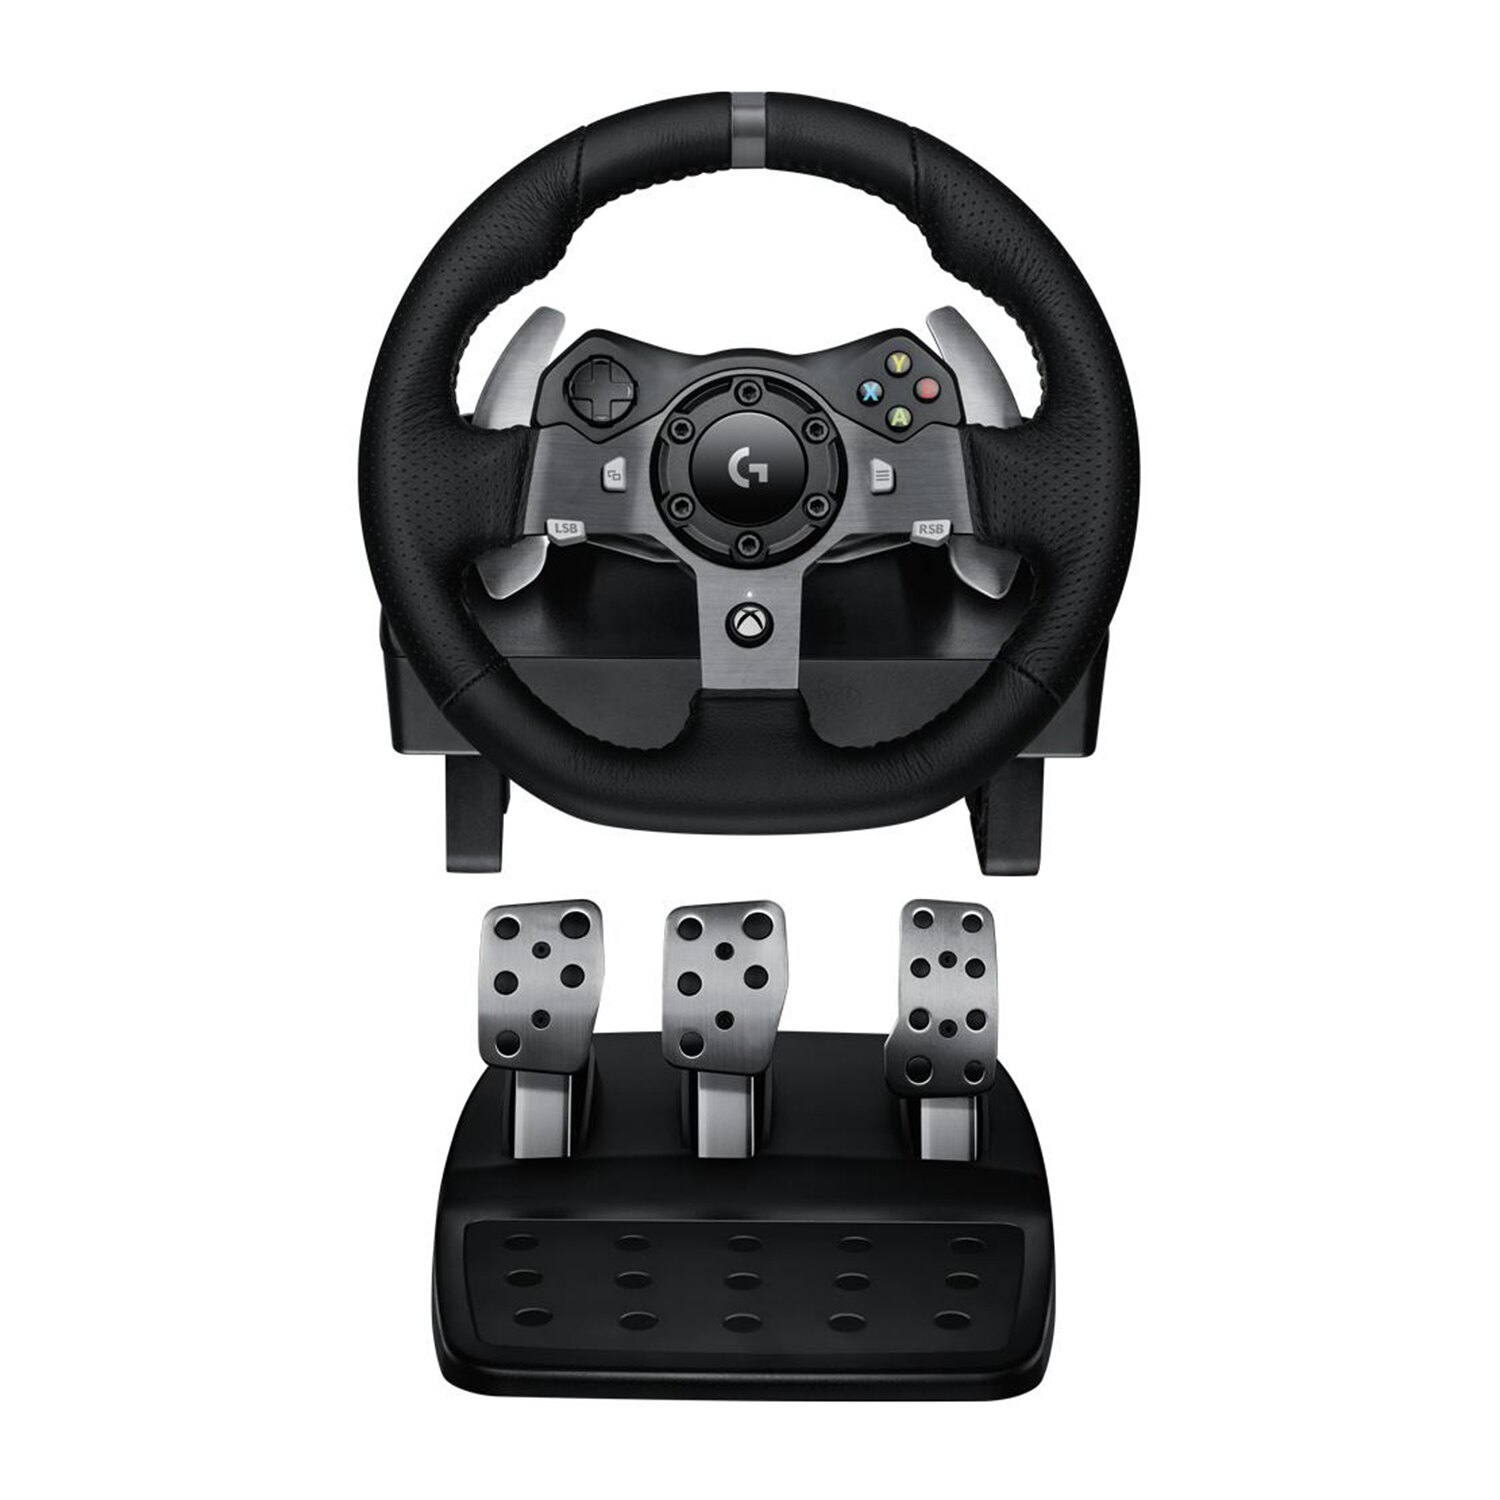 Refurb Logitech G920 Driving Force Racing Wheel Dual Motor Force